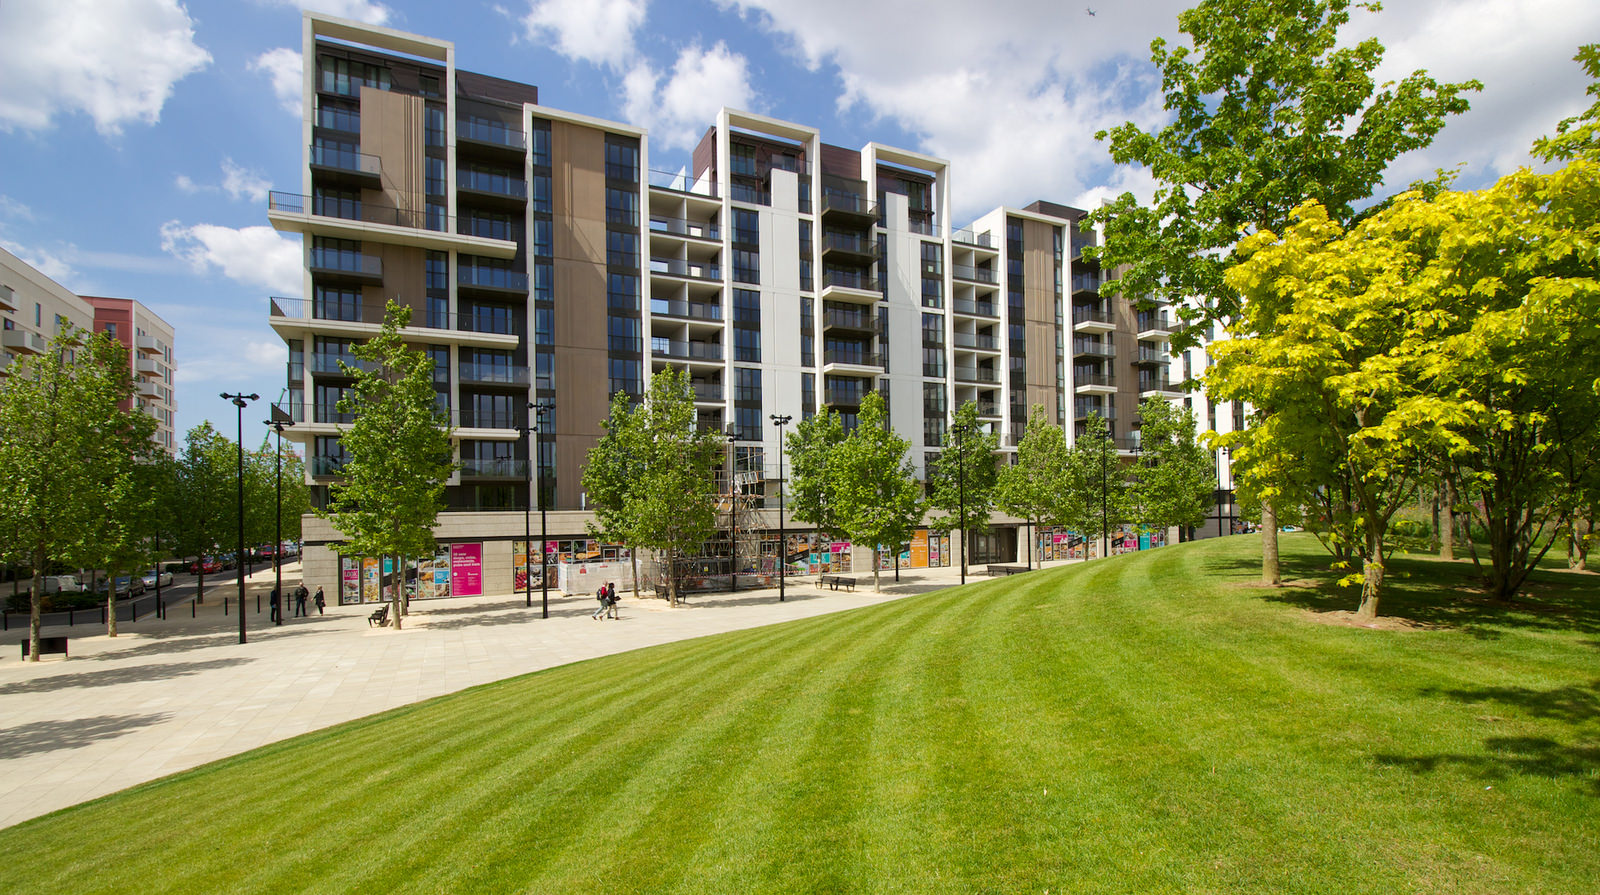 Olympic Village, Stratford – Structural Engineering Support Services